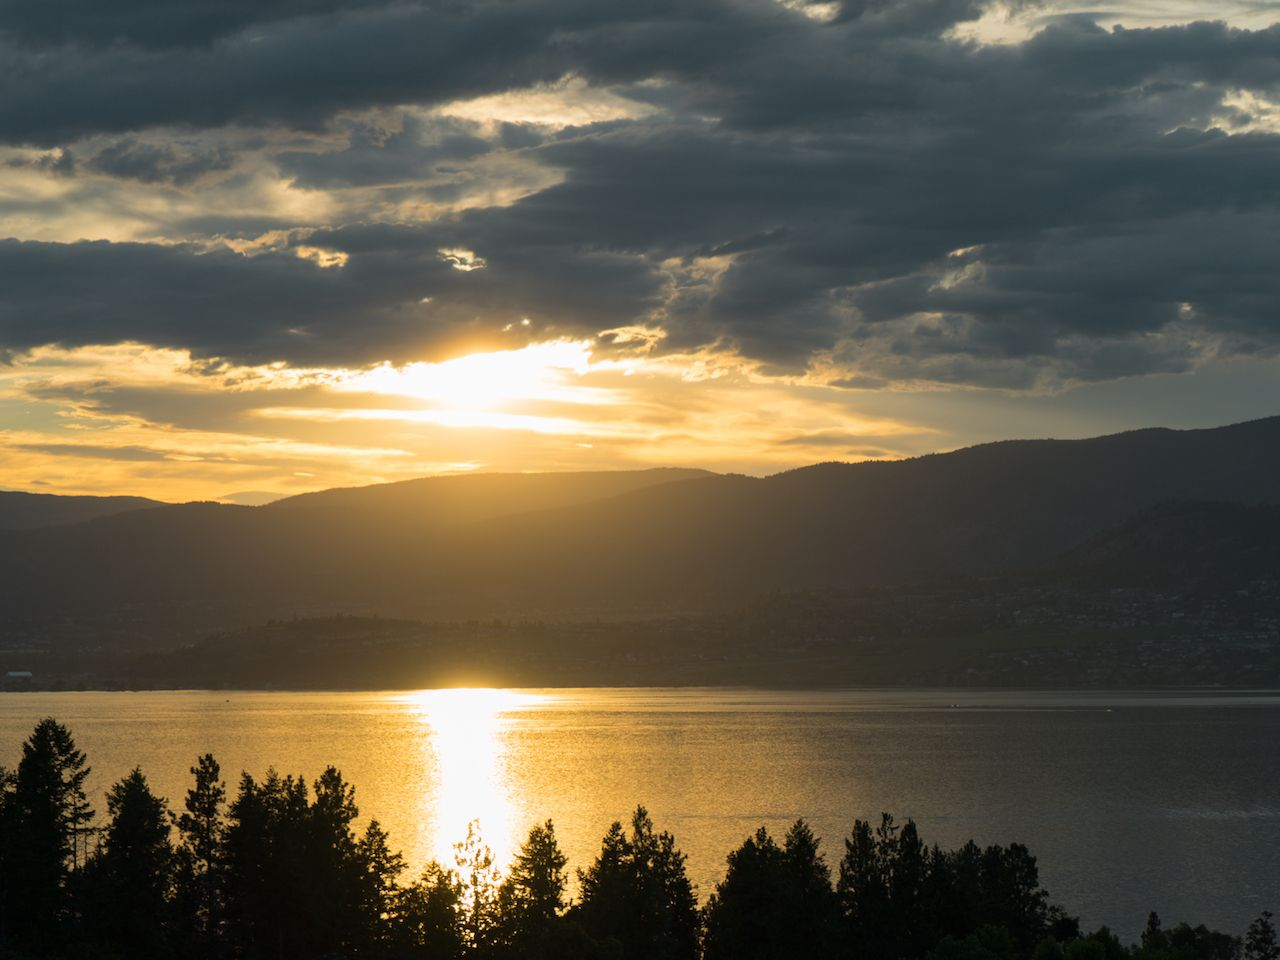 Visiting British Columbia? Don't miss the Okanagan Valley